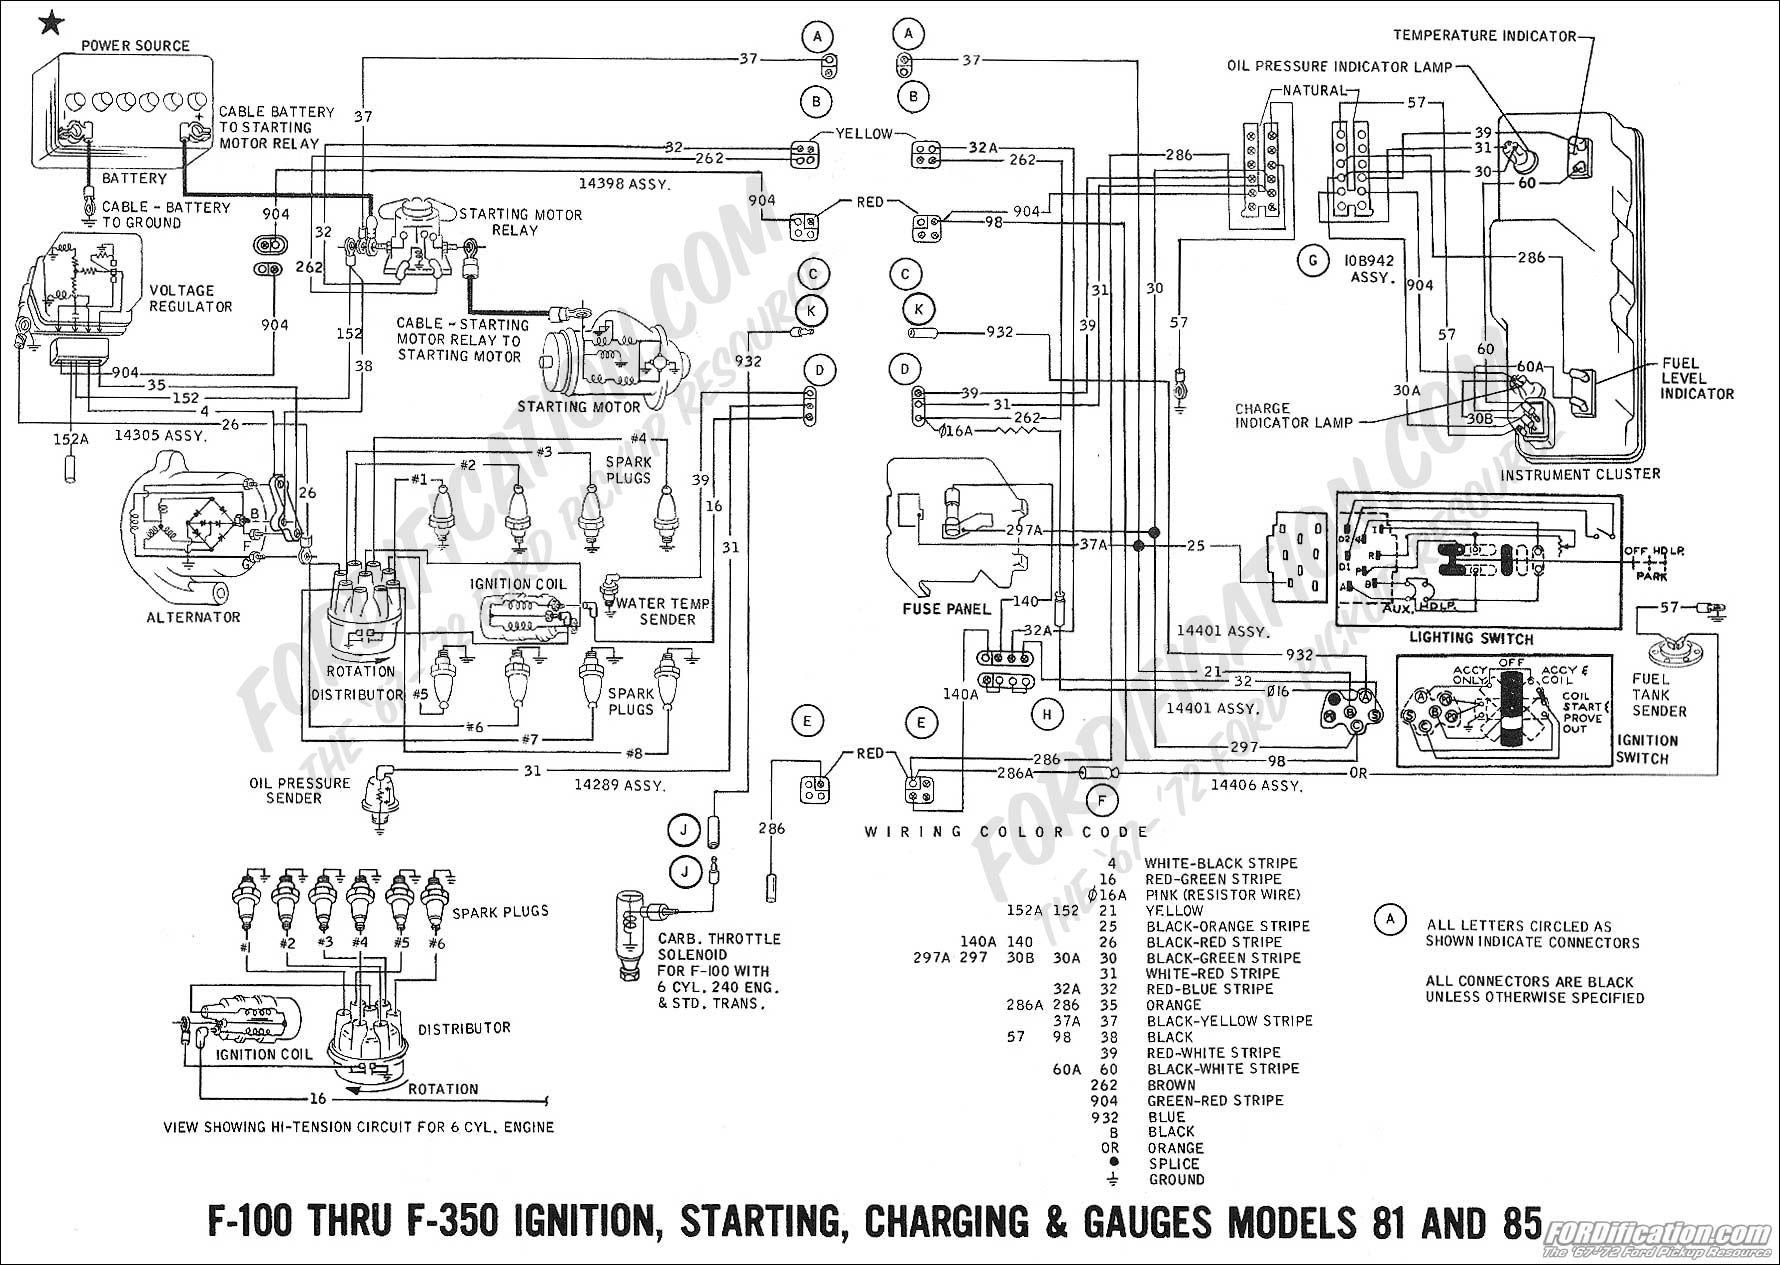 1995 Mustang Gt Fuse Box Diagram Wiring Library F150 Engine 1968 Schematic Enthusiast Rh Rasalibre Co Ford